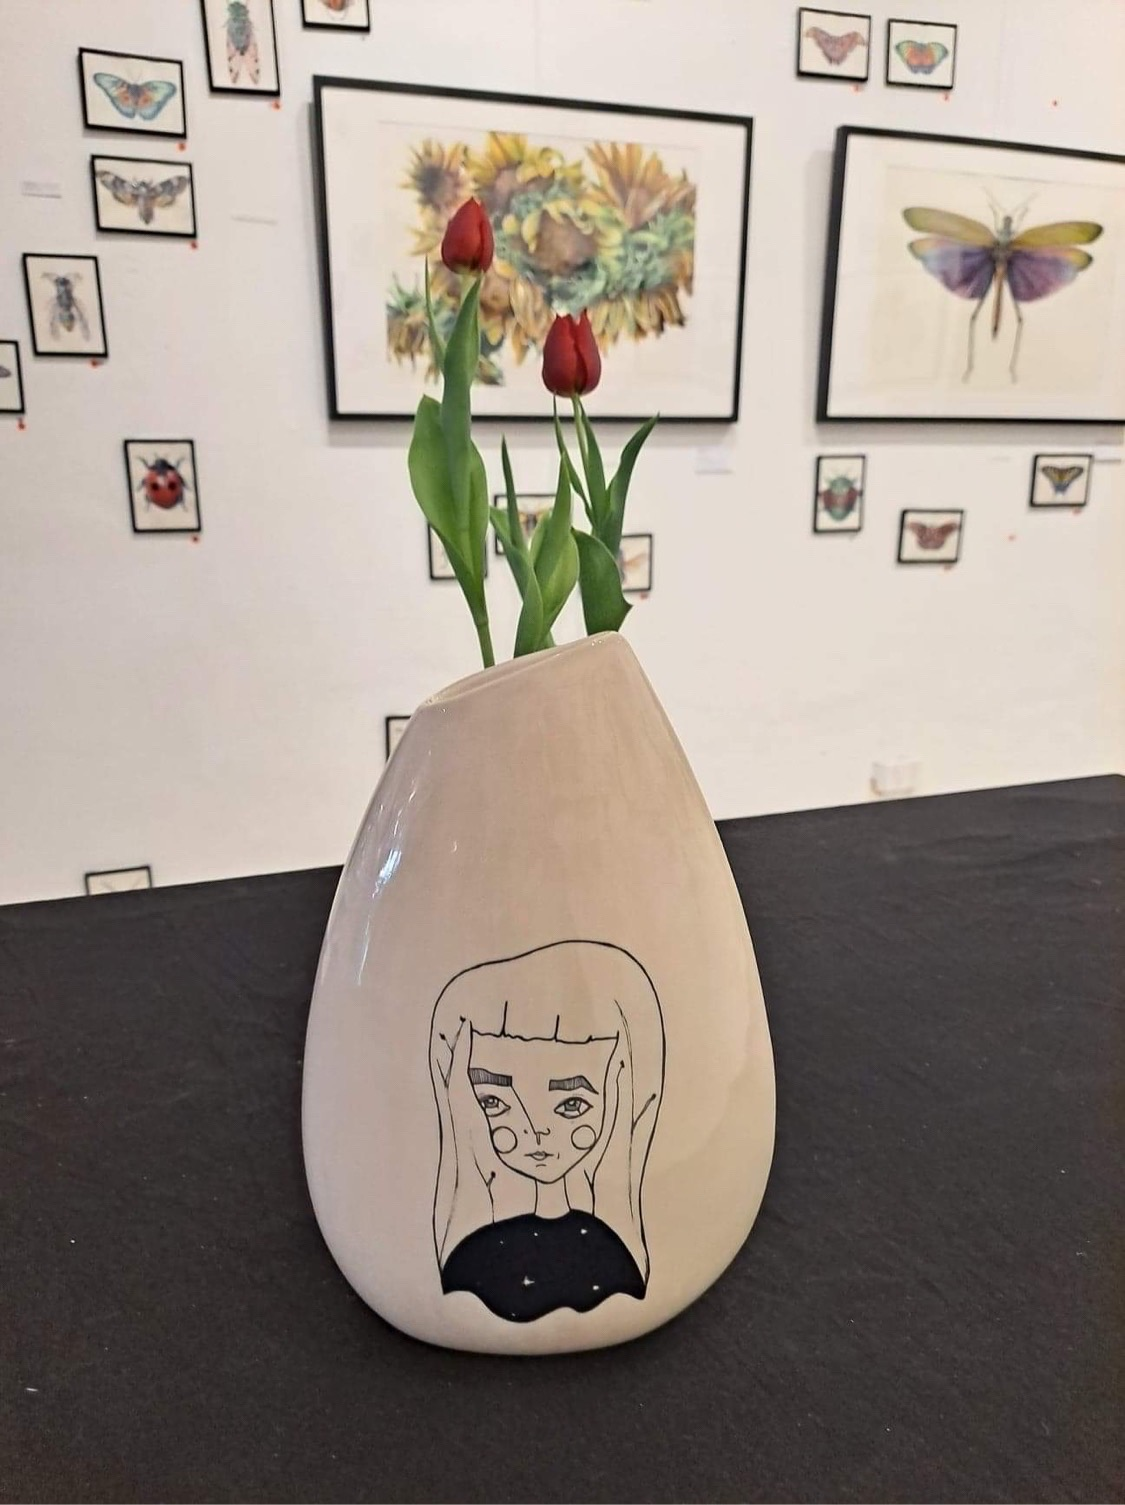 Vase By Forrest Girl (Home Exhibition)